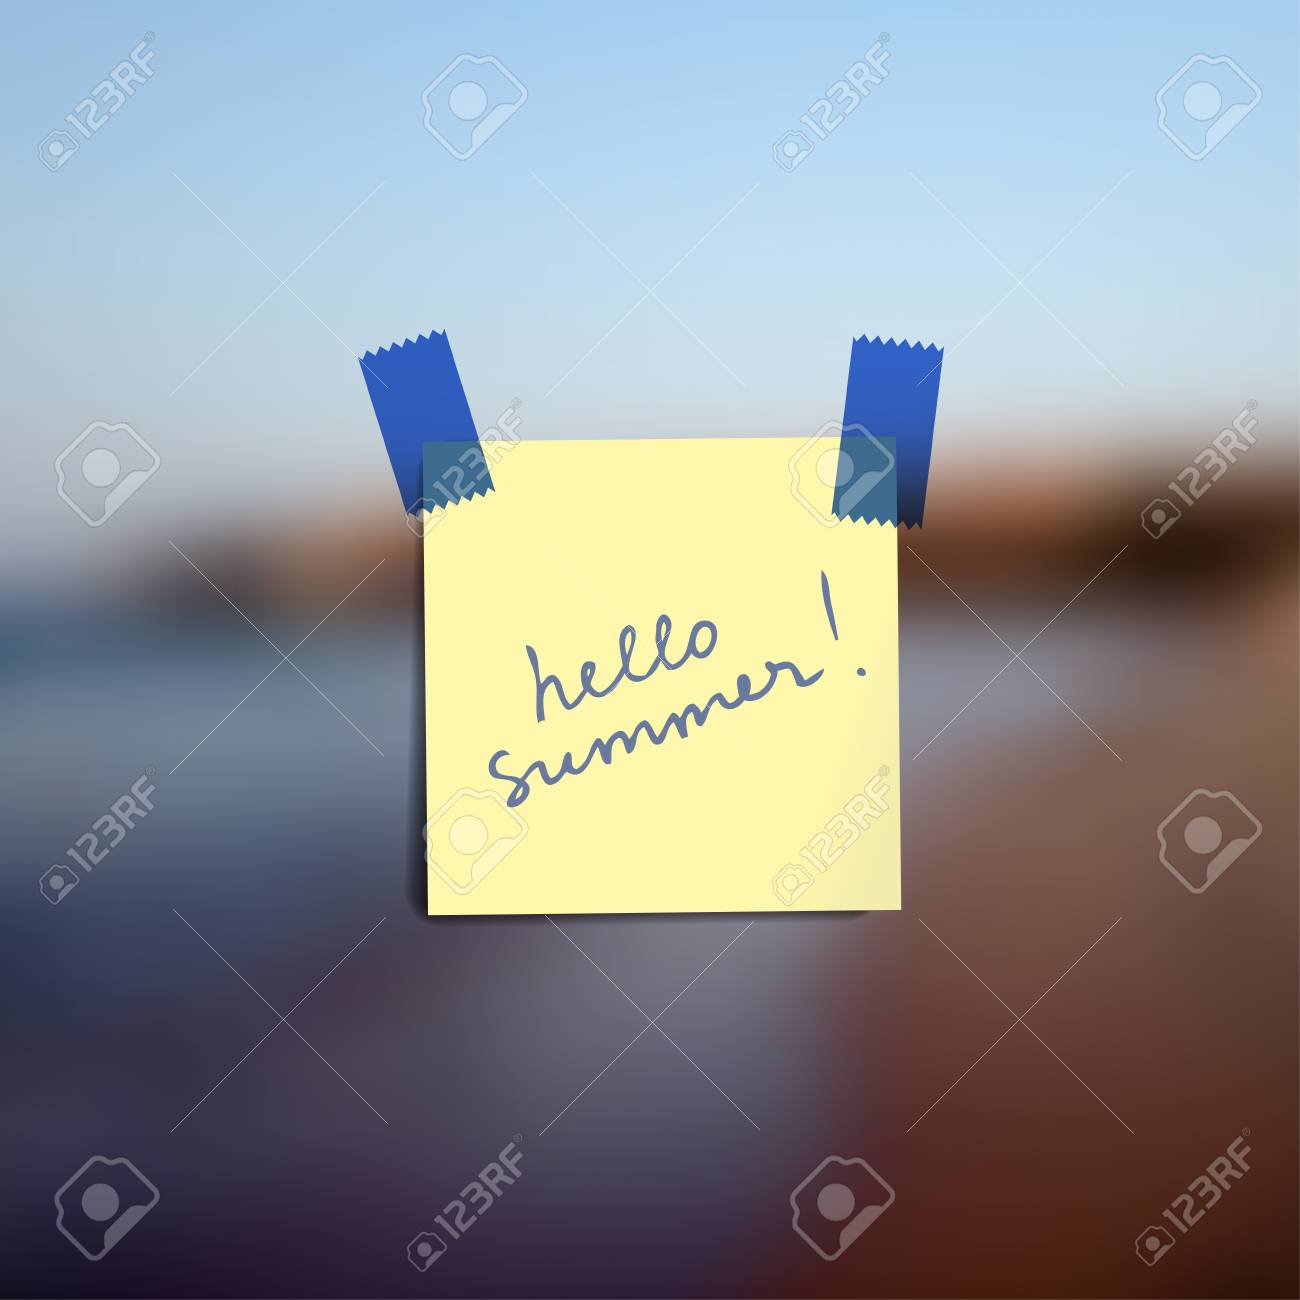 Sticky notes wallpaper on blurred vector background with lettering Hello summer Stock Vector - 59672721